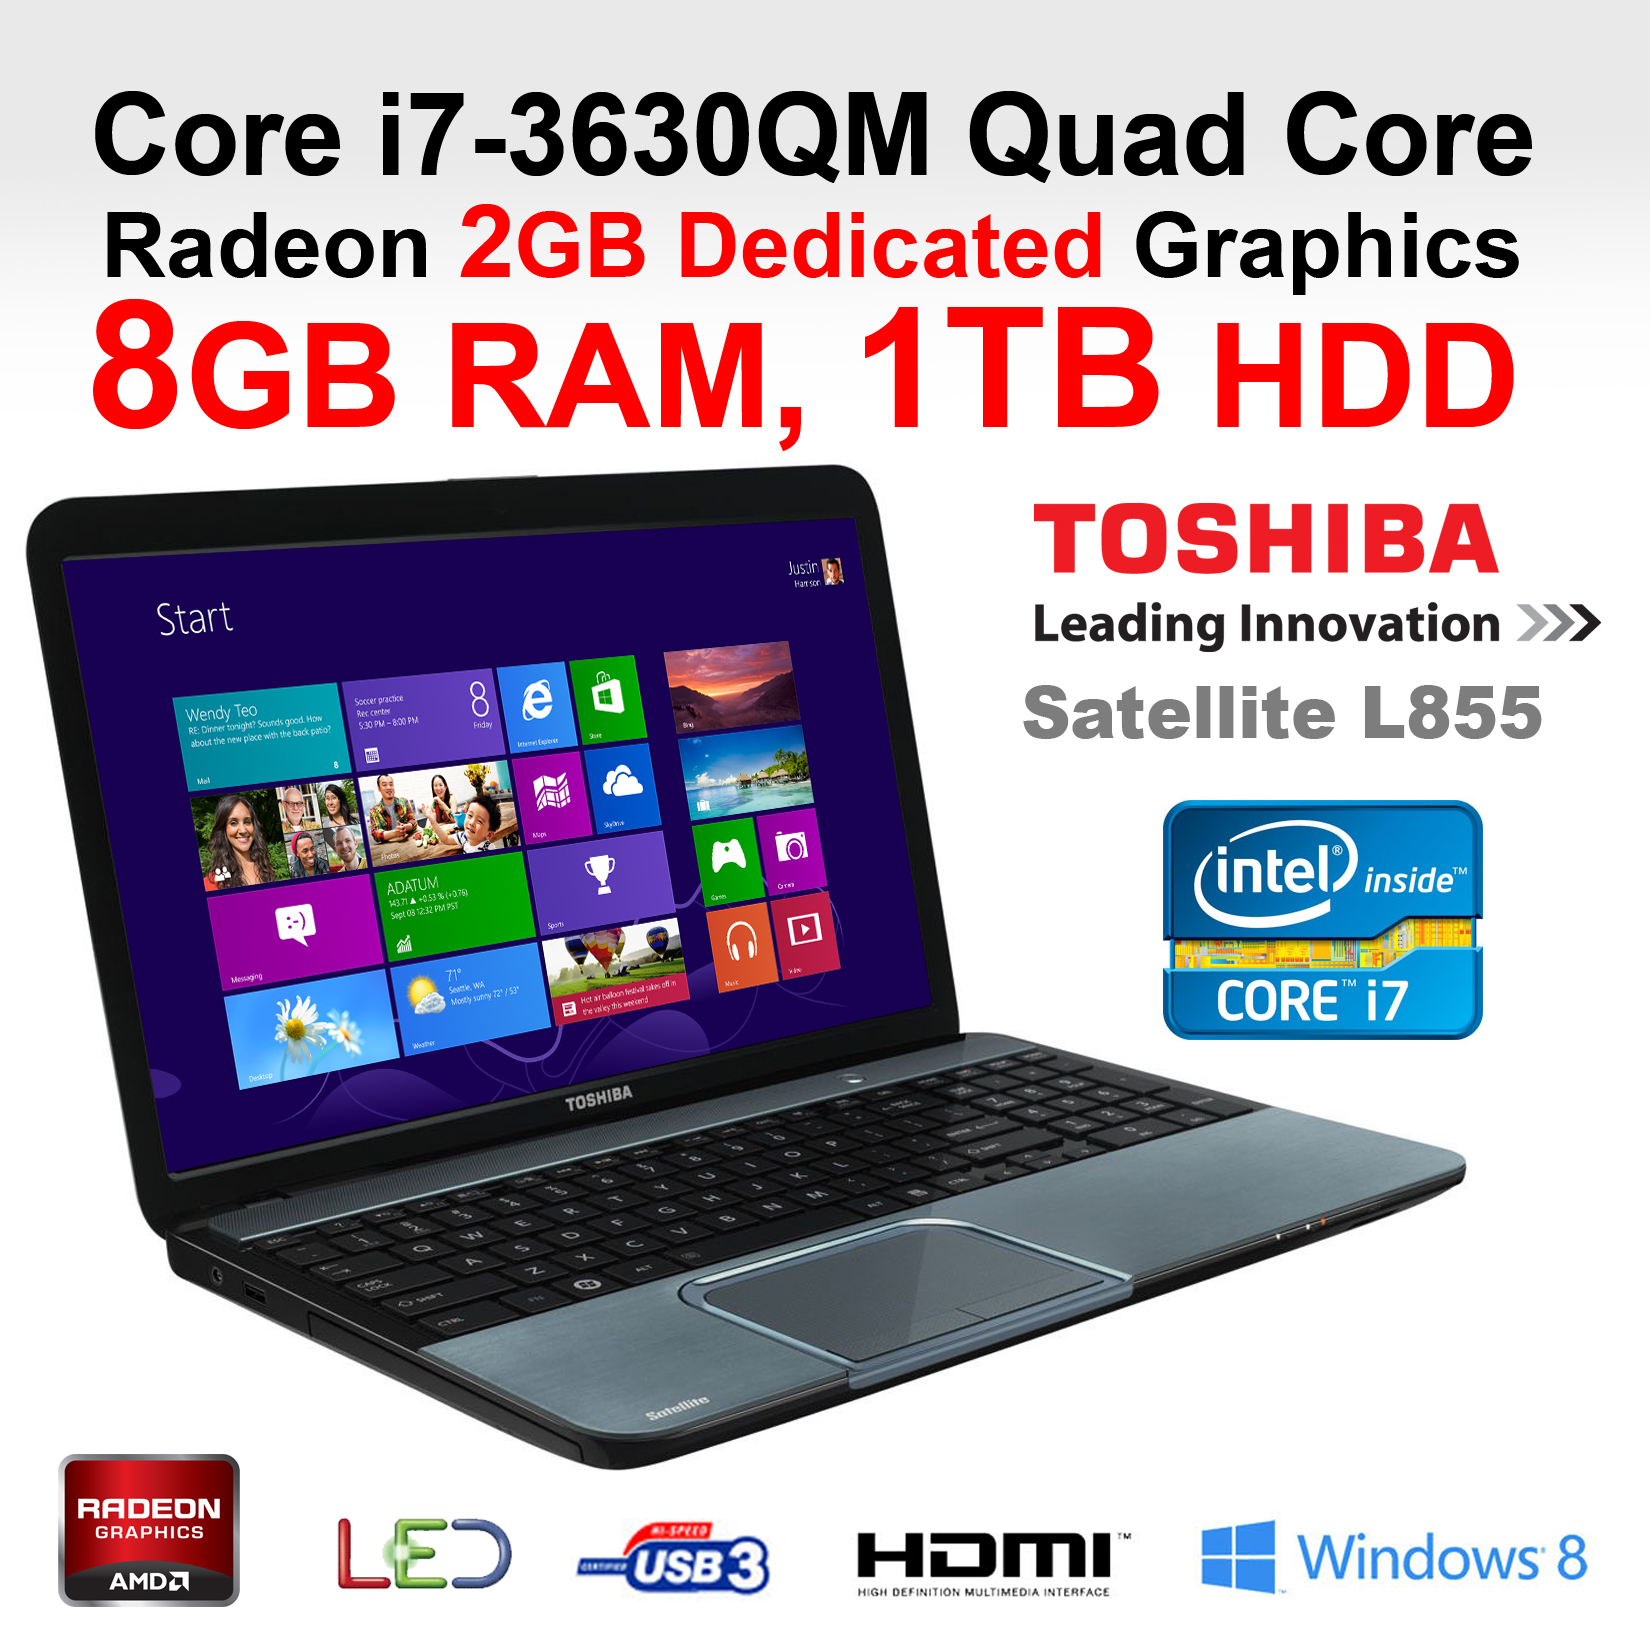 toshiba l855 188 cheapest core i7 laptop intel 3630qm quad. Black Bedroom Furniture Sets. Home Design Ideas